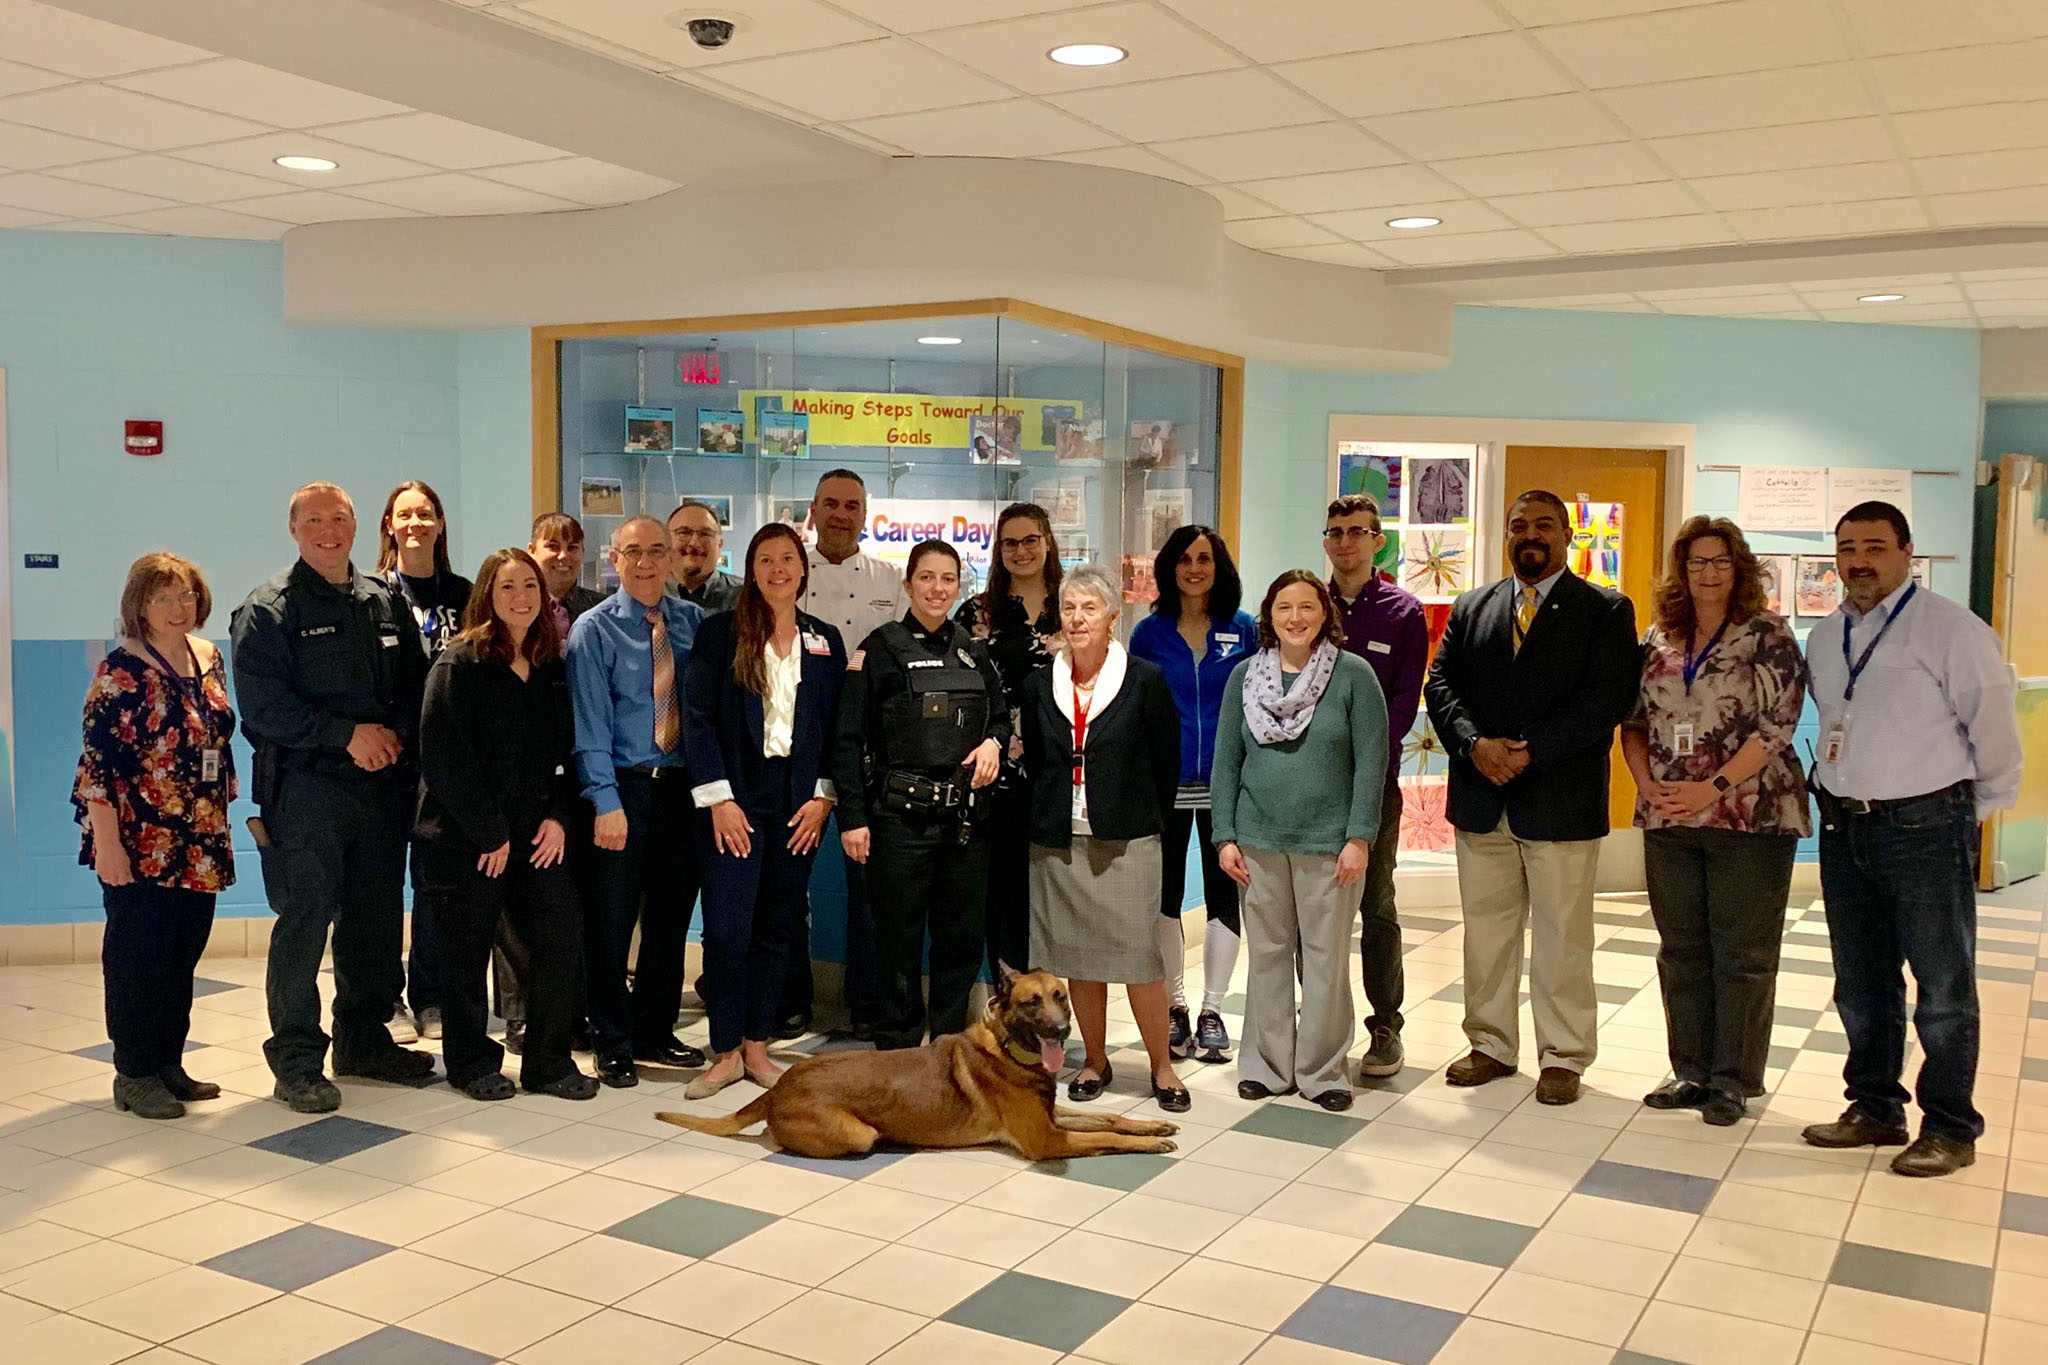 group photos of career presenters with school officials